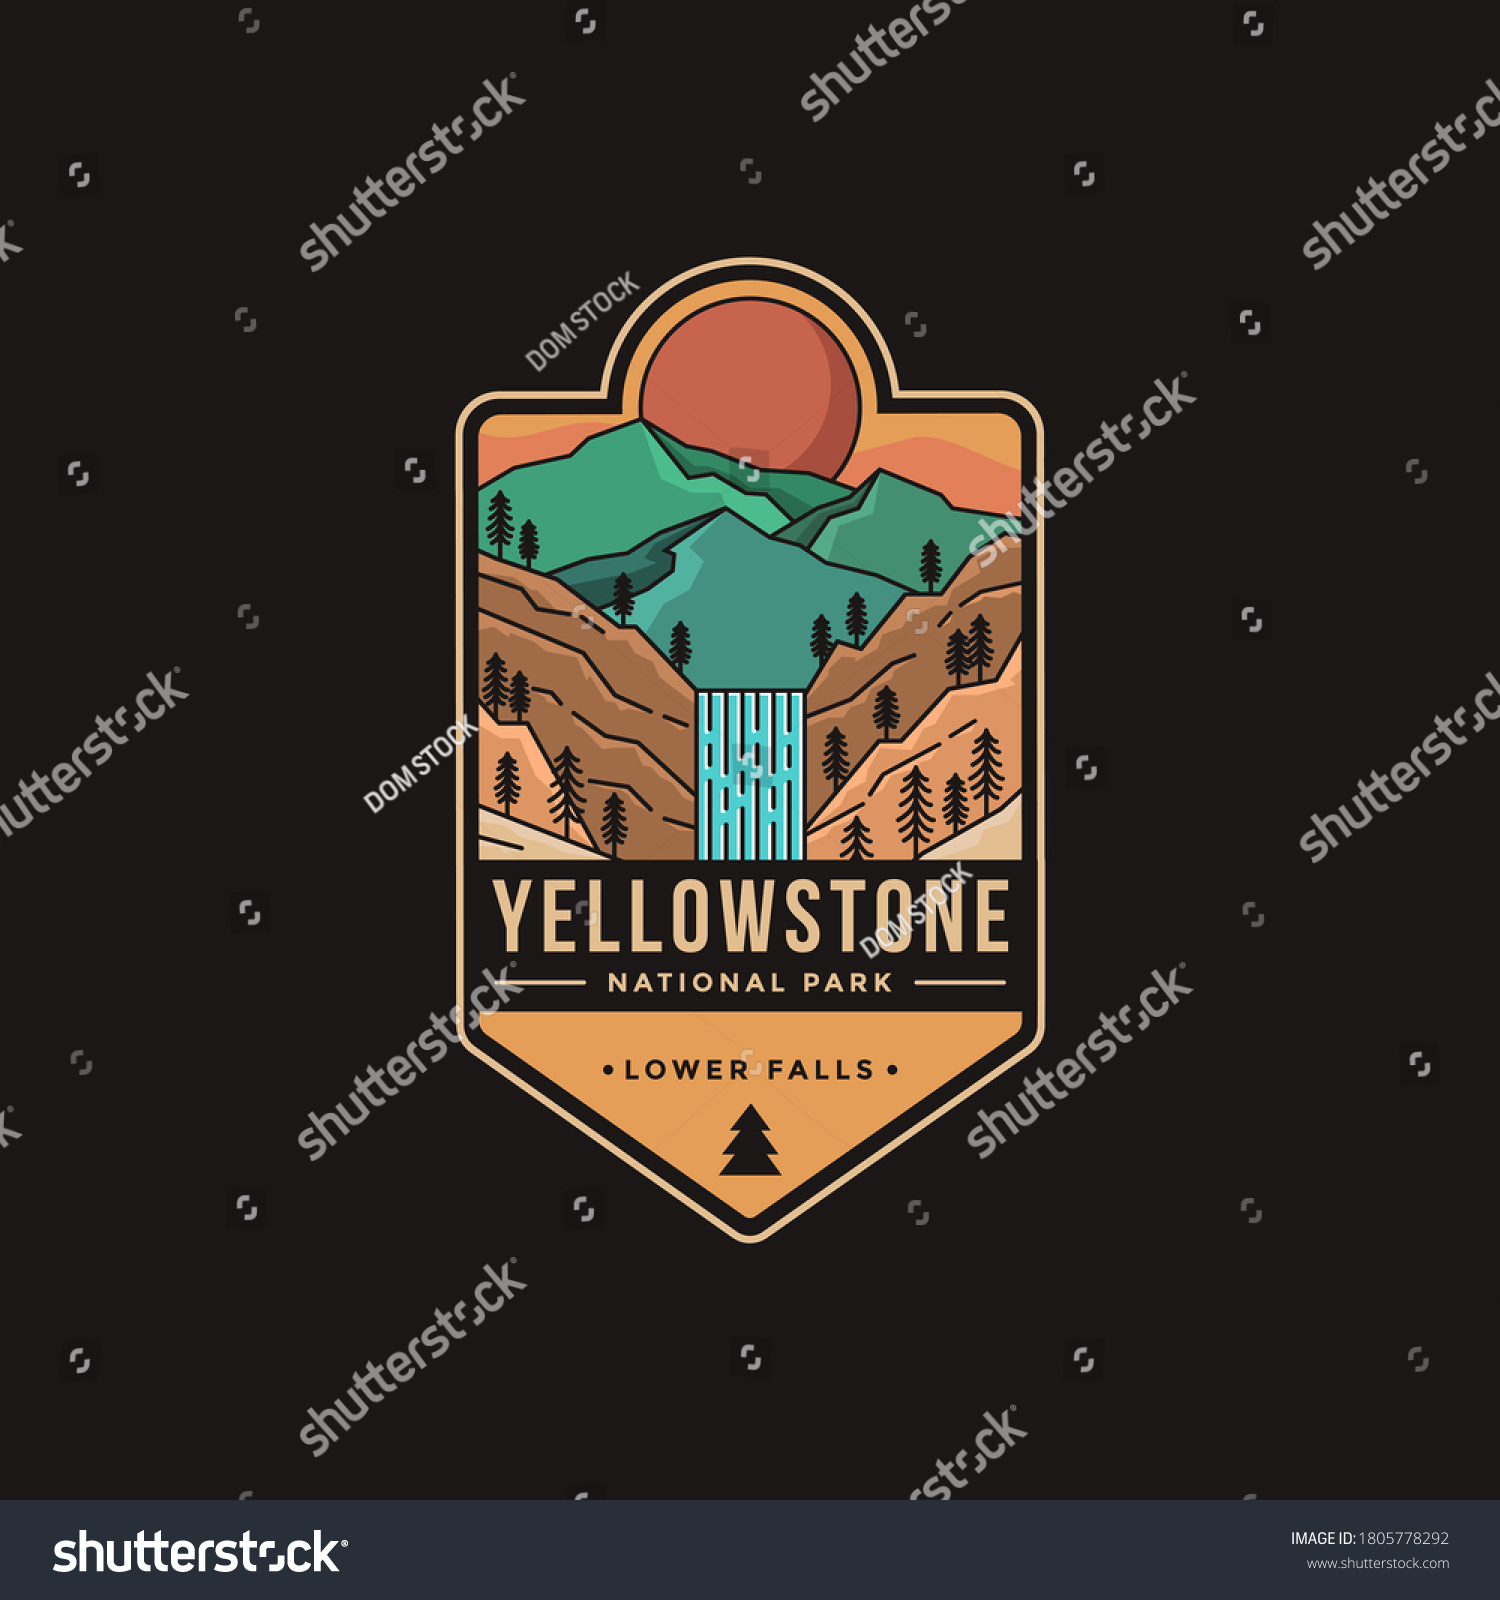 Lineart Emblem patch logo illustration of Lower falls Yellowstone National Park #1805778292